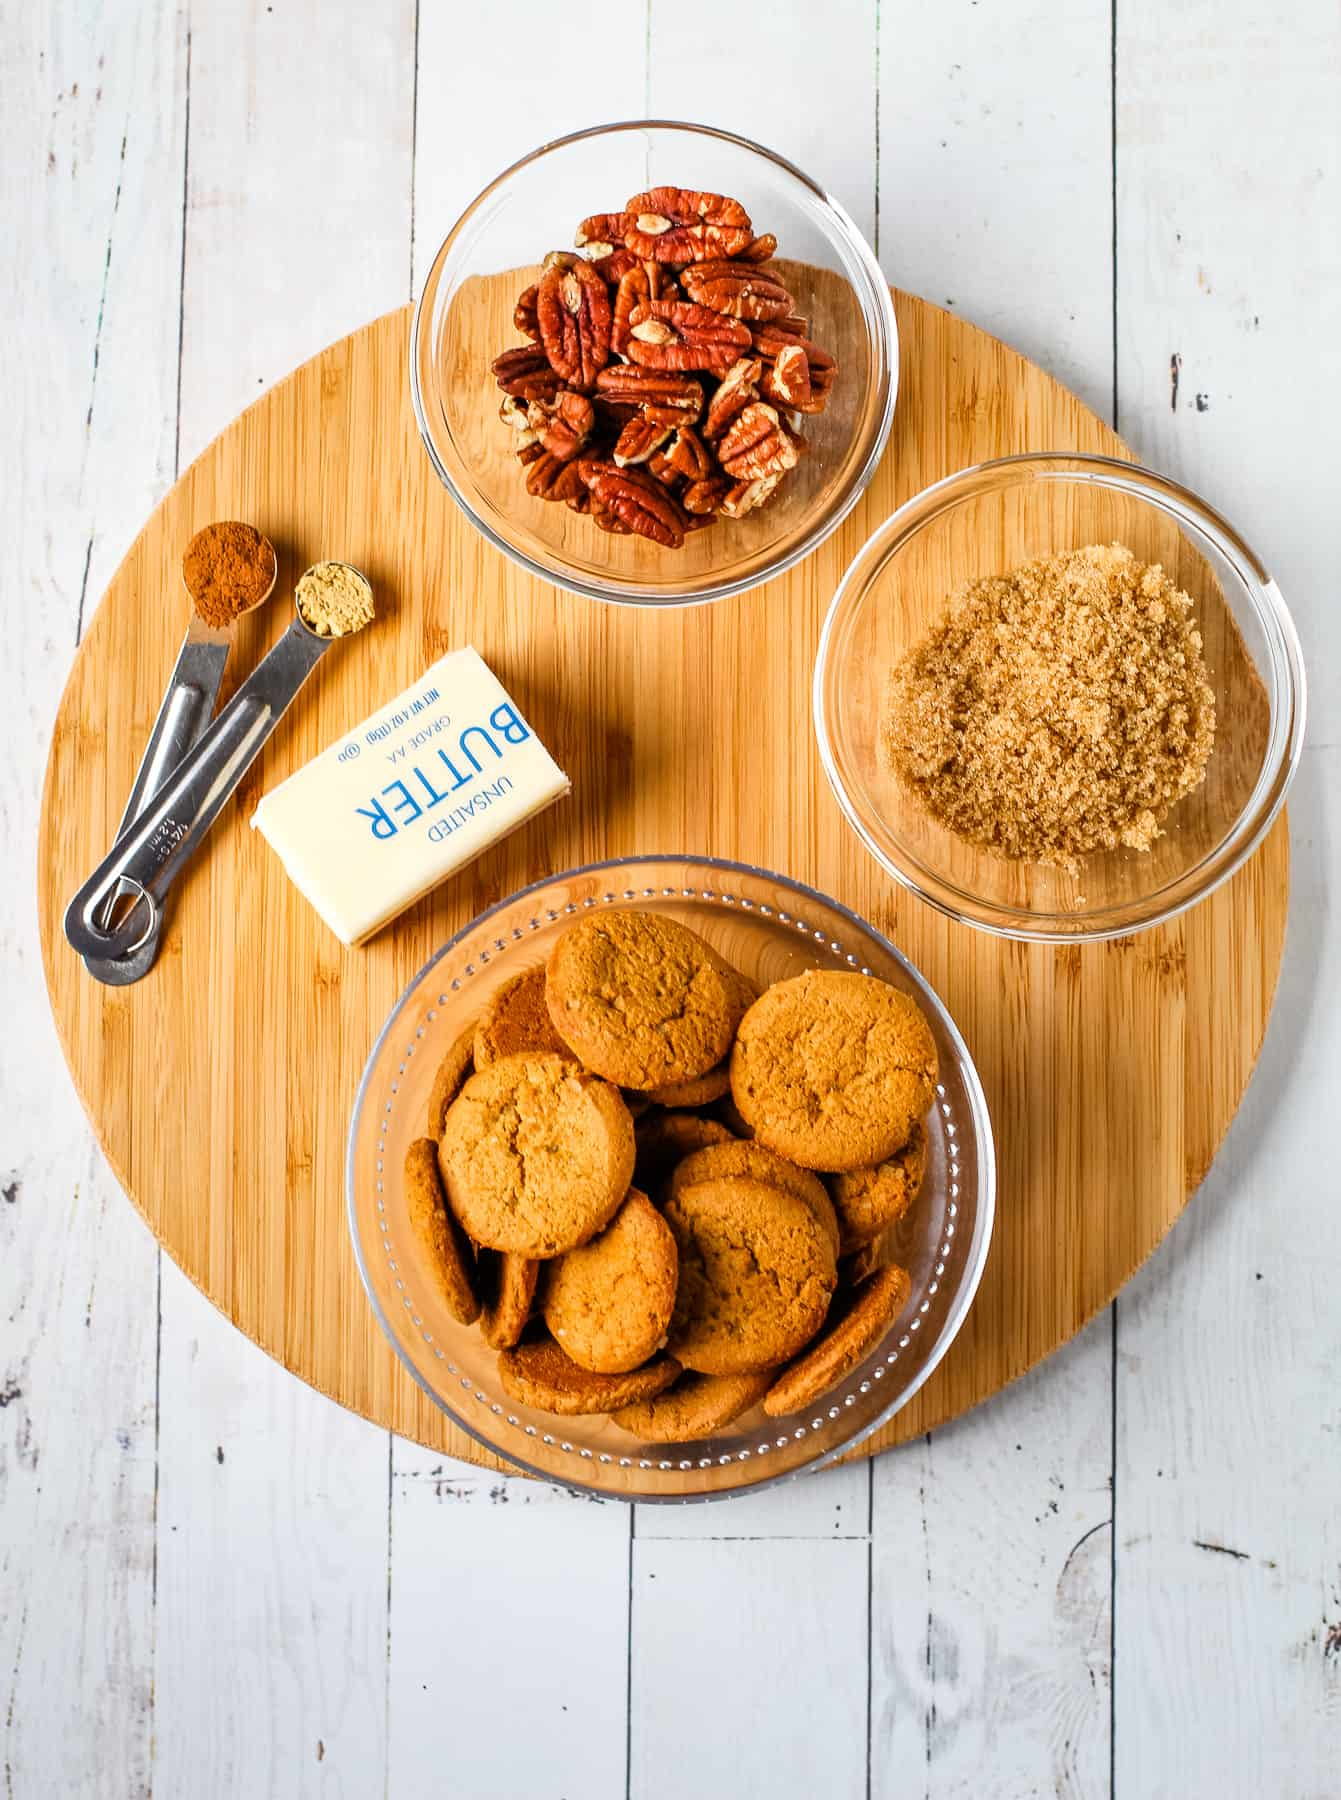 Ingredients for gingersnap crust